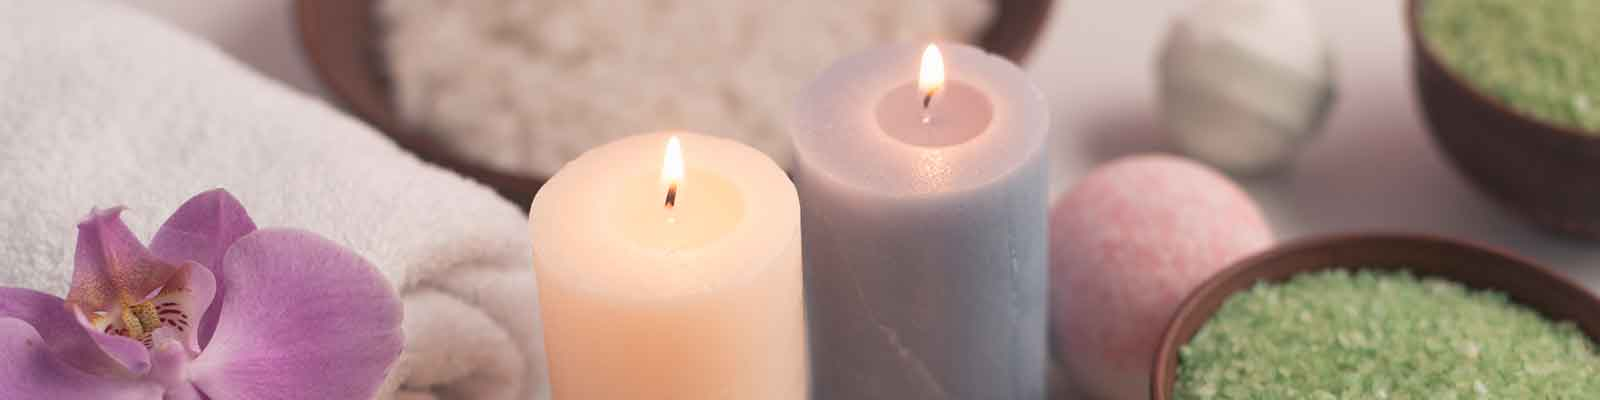 7 Reasons to Use Scented Candles